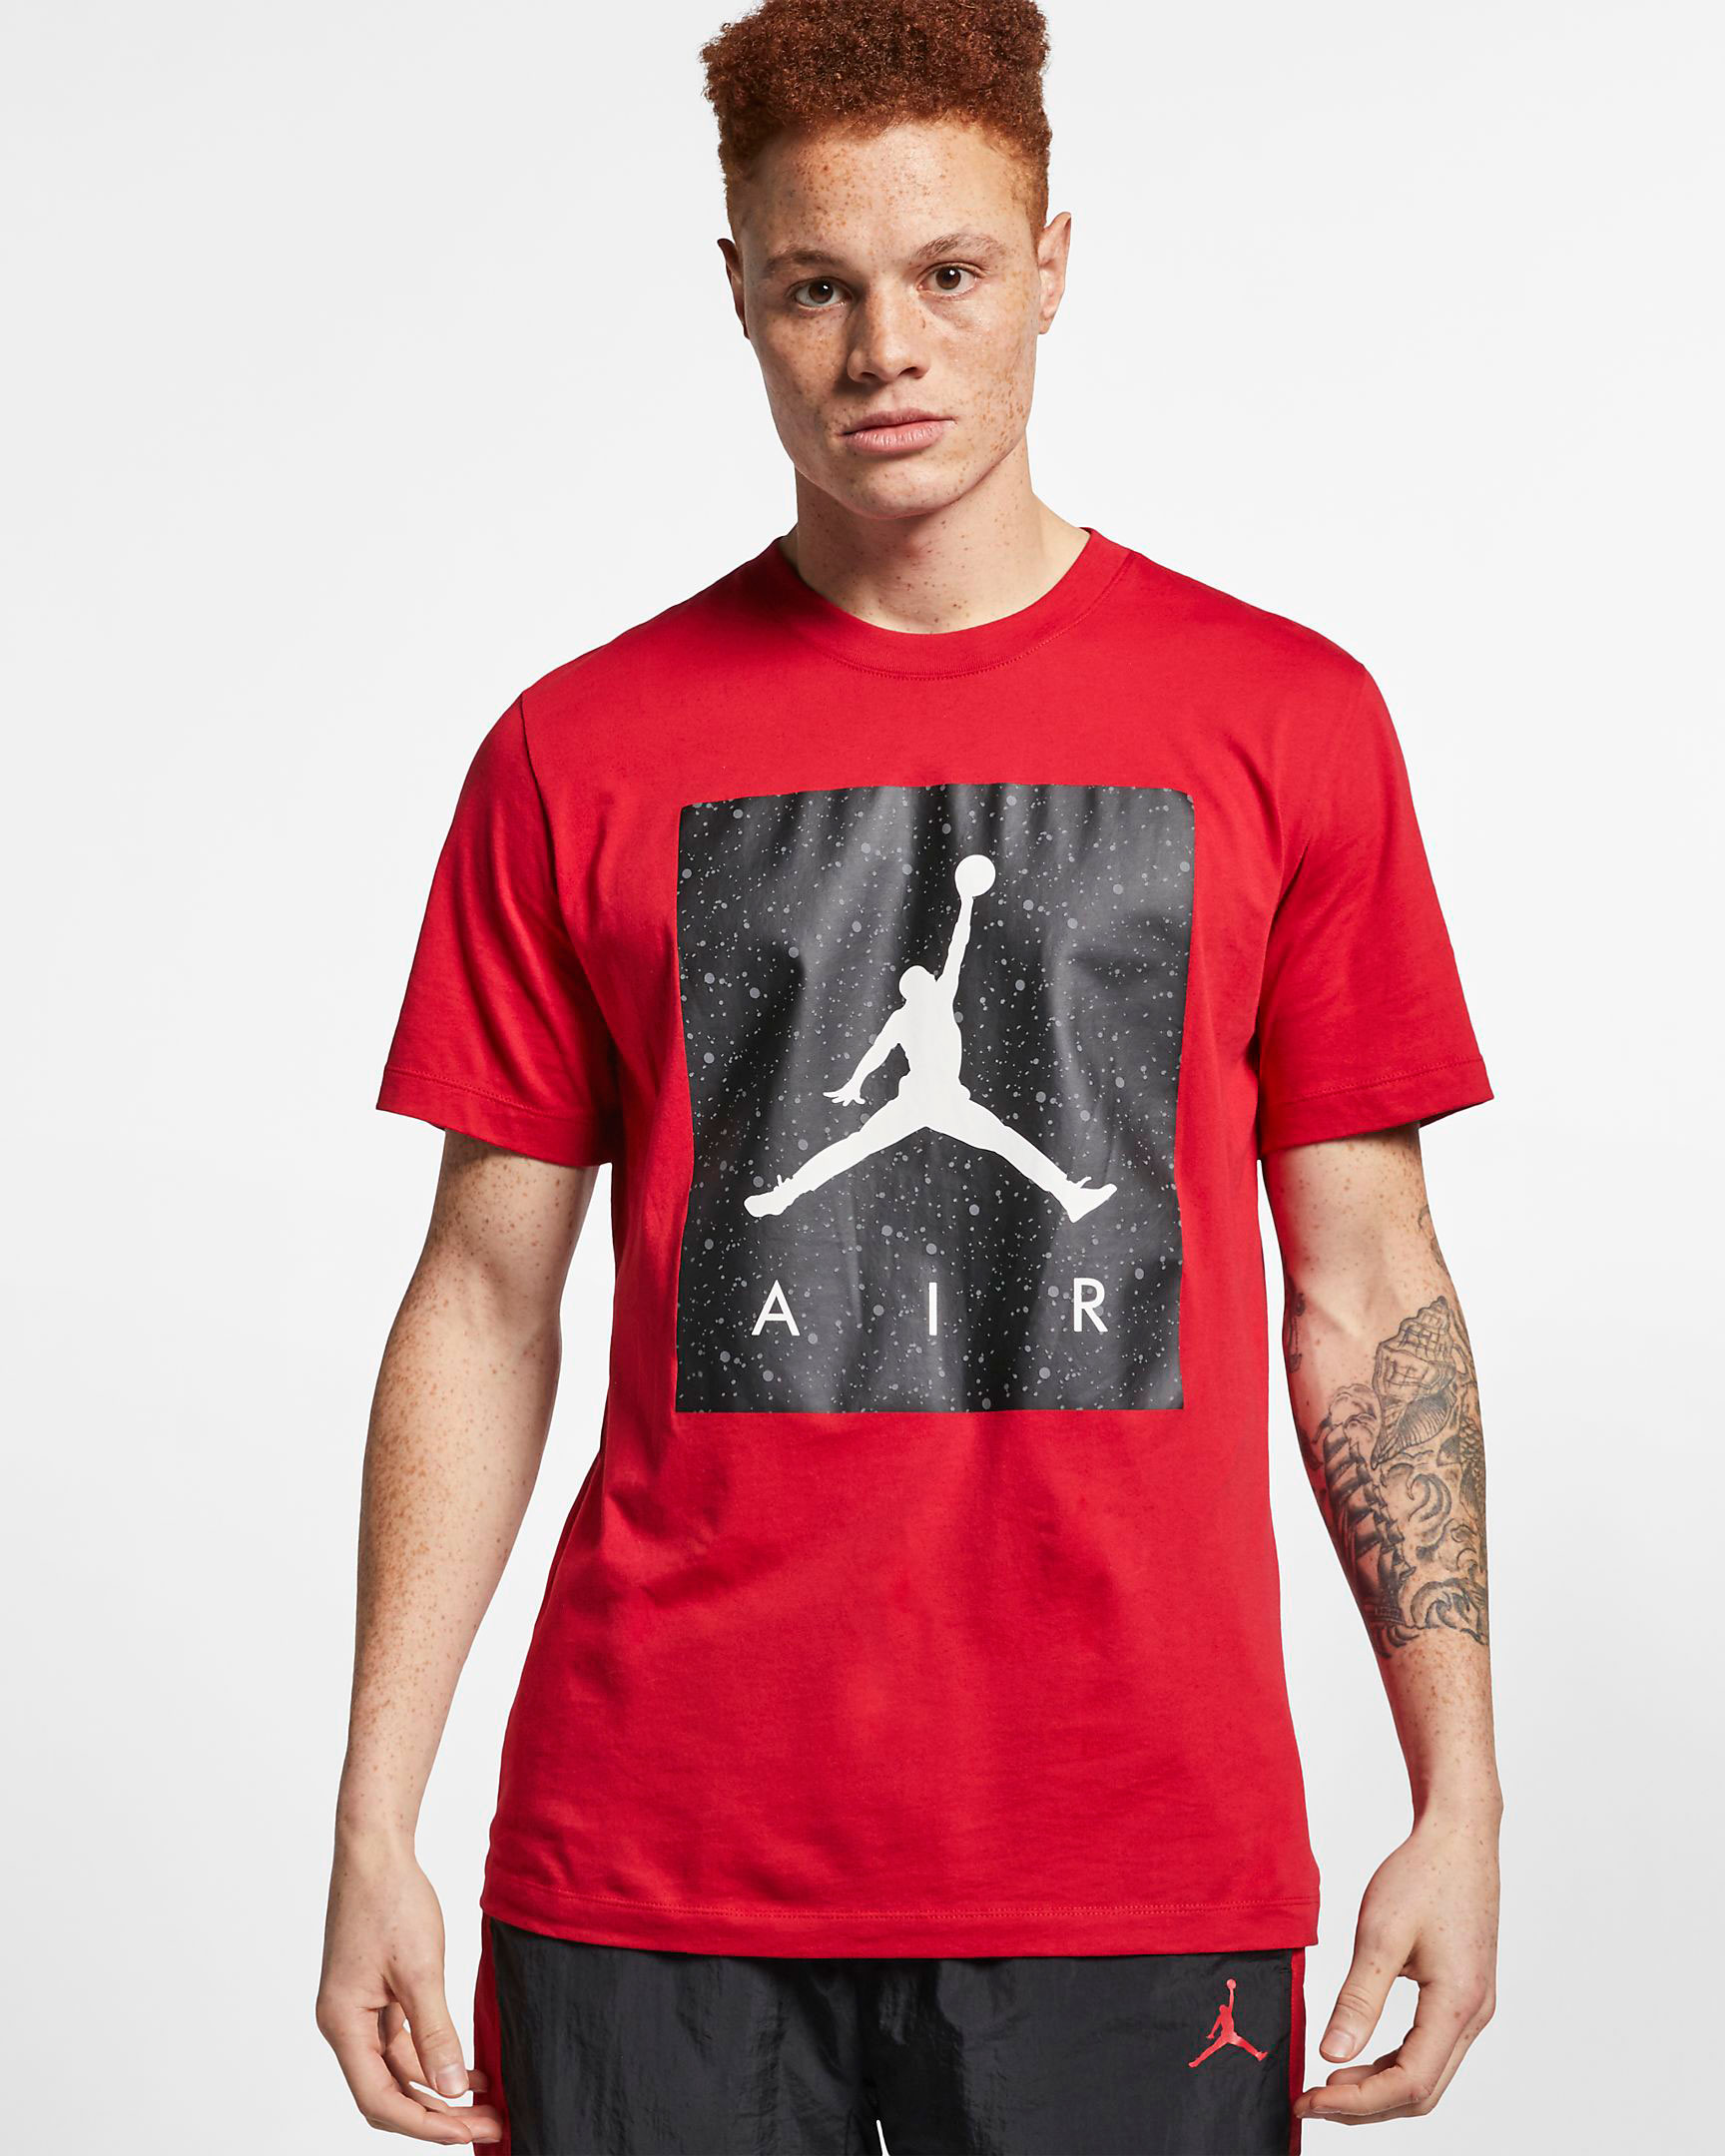 jordan-3-tinker-air-max-1-matching-shirt-2